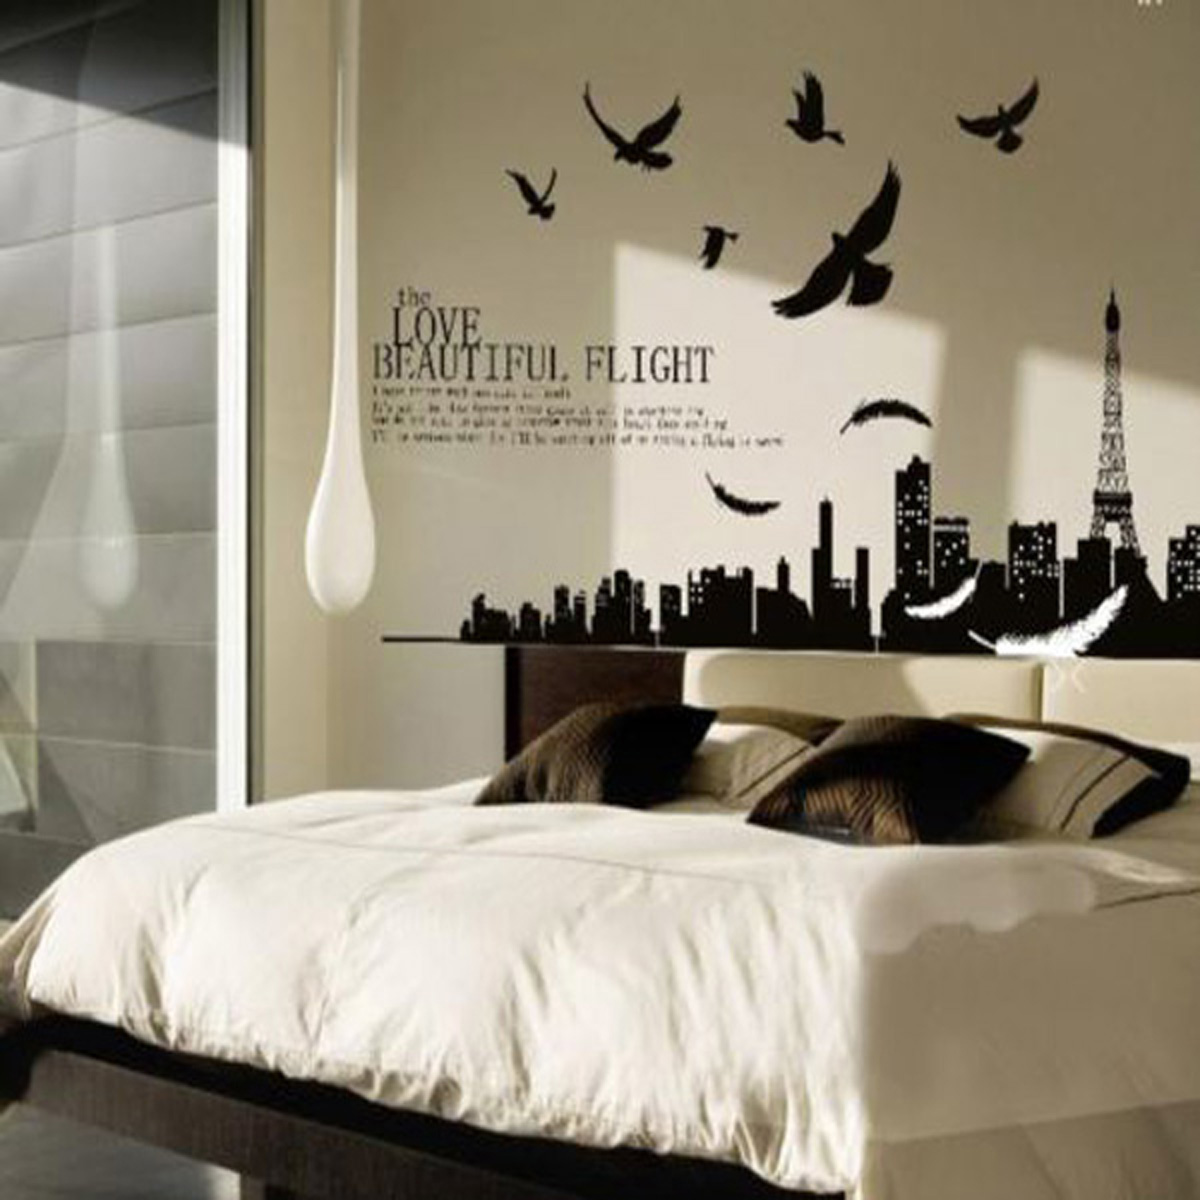 Quote word decal vinyl diy home room decor art wall stickers bedroom removabl - Lettre decorative murale ...